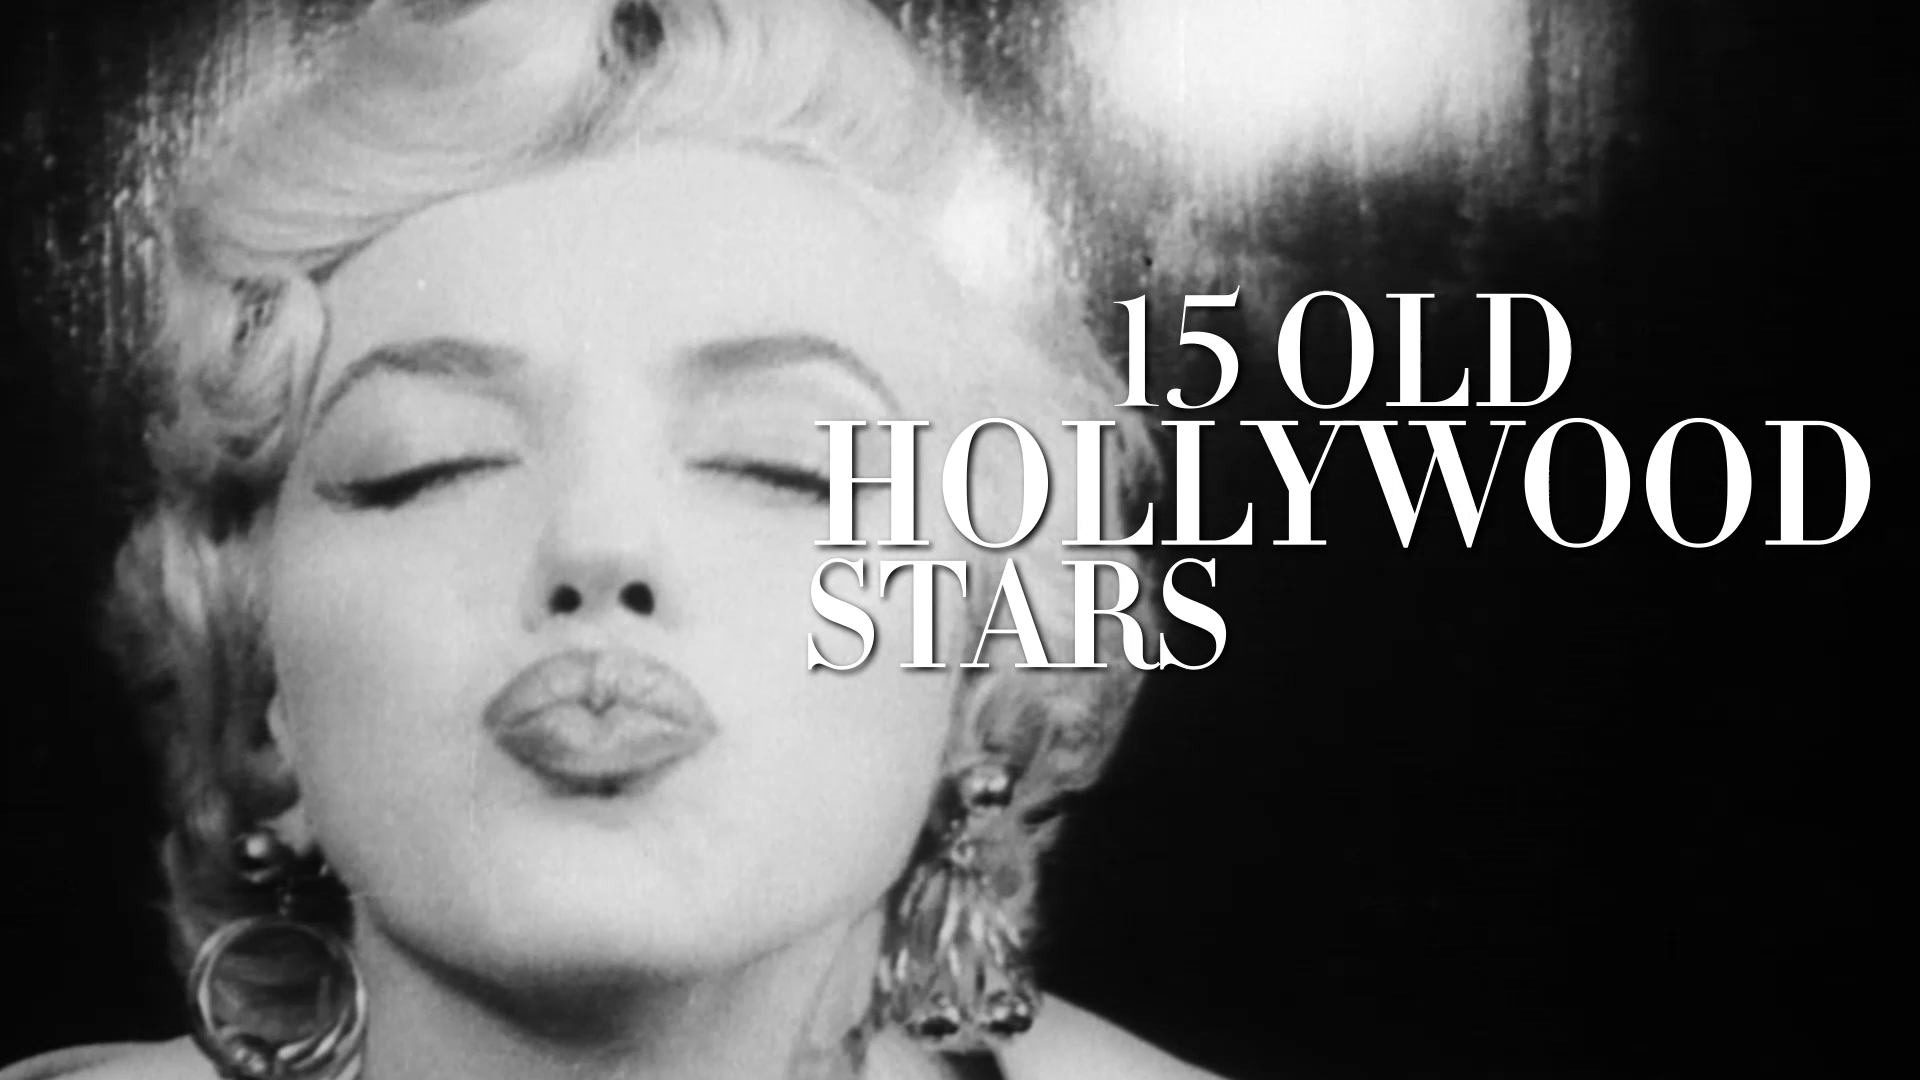 15 Old Hollywood Stars at Home